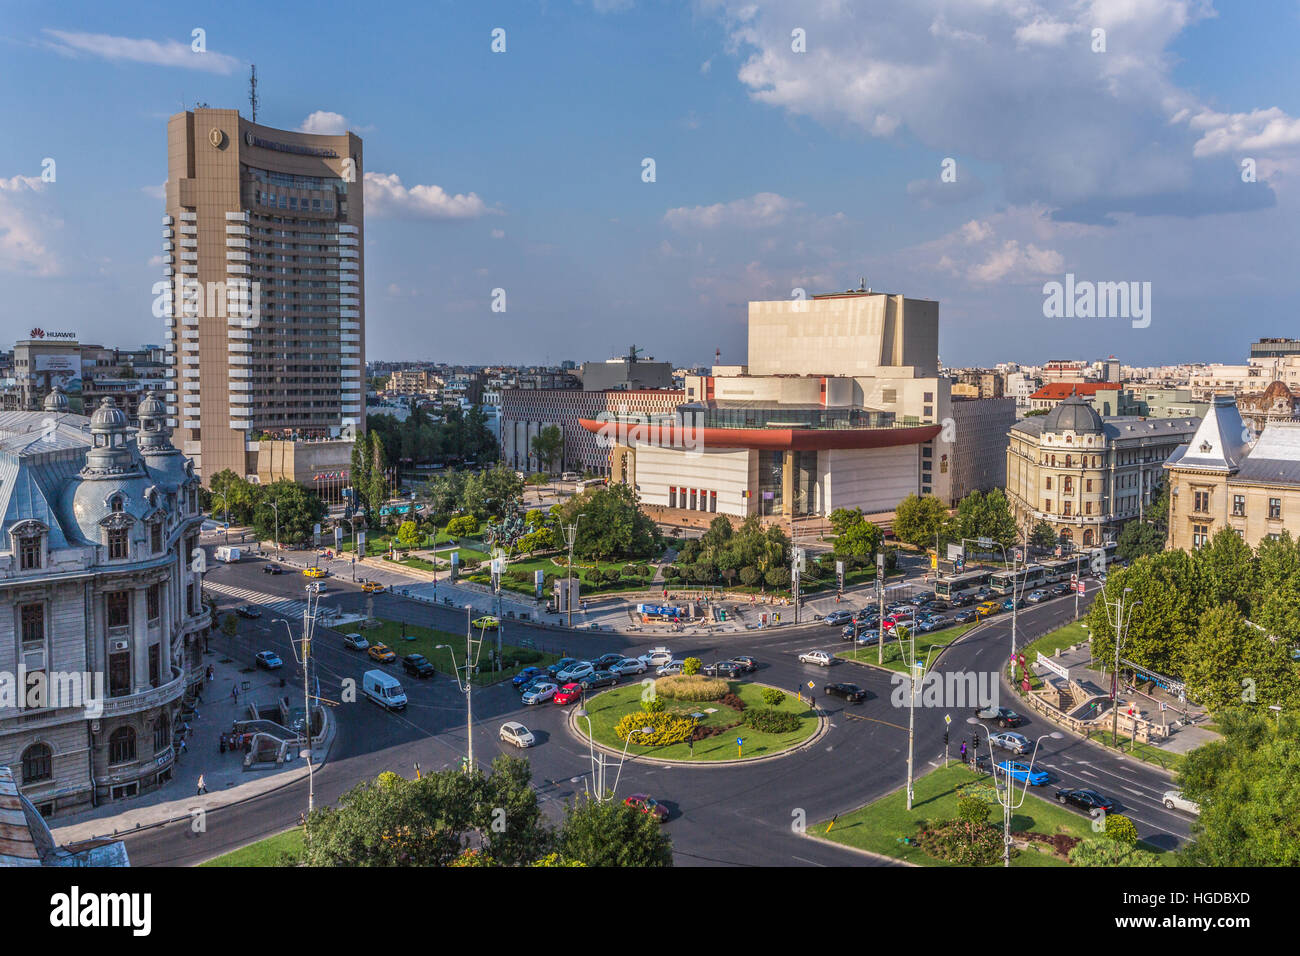 Romania, Bucharest City, University Square, National Theatre and Intercontinental Hotel - Stock Image